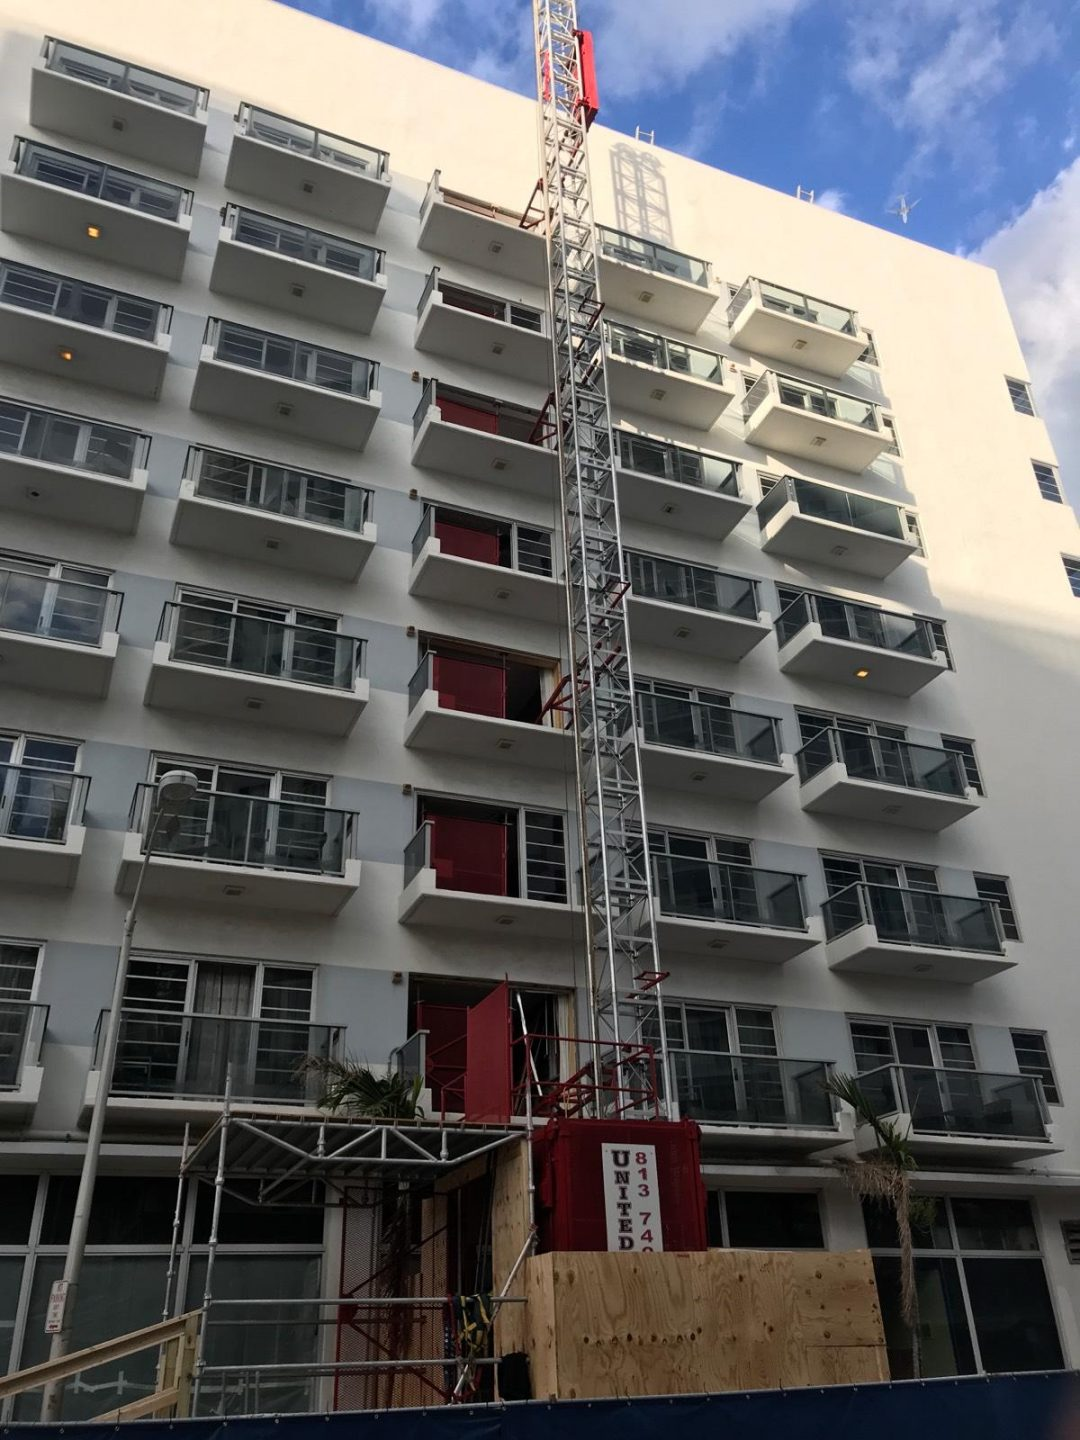 Multilevel condo construction building